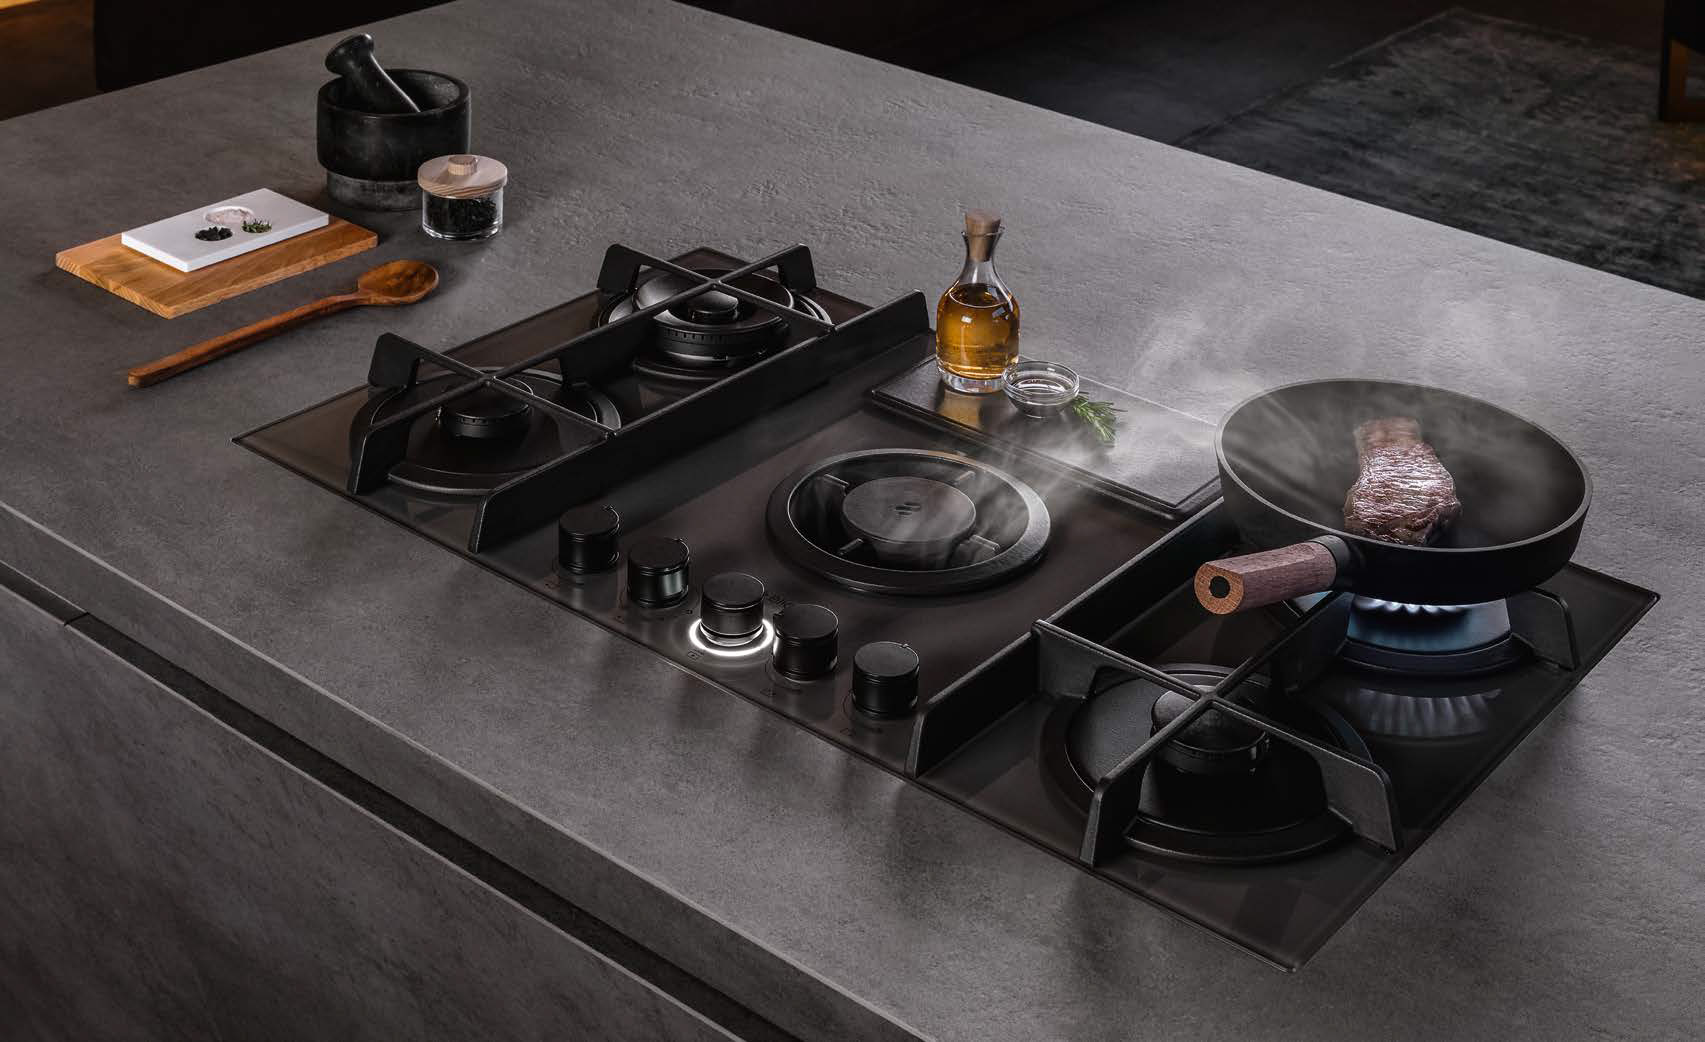 NikolaTesla Flame, the practicalness of an aspiration hob combined with the ease of gas cooking - Cucine LUBE